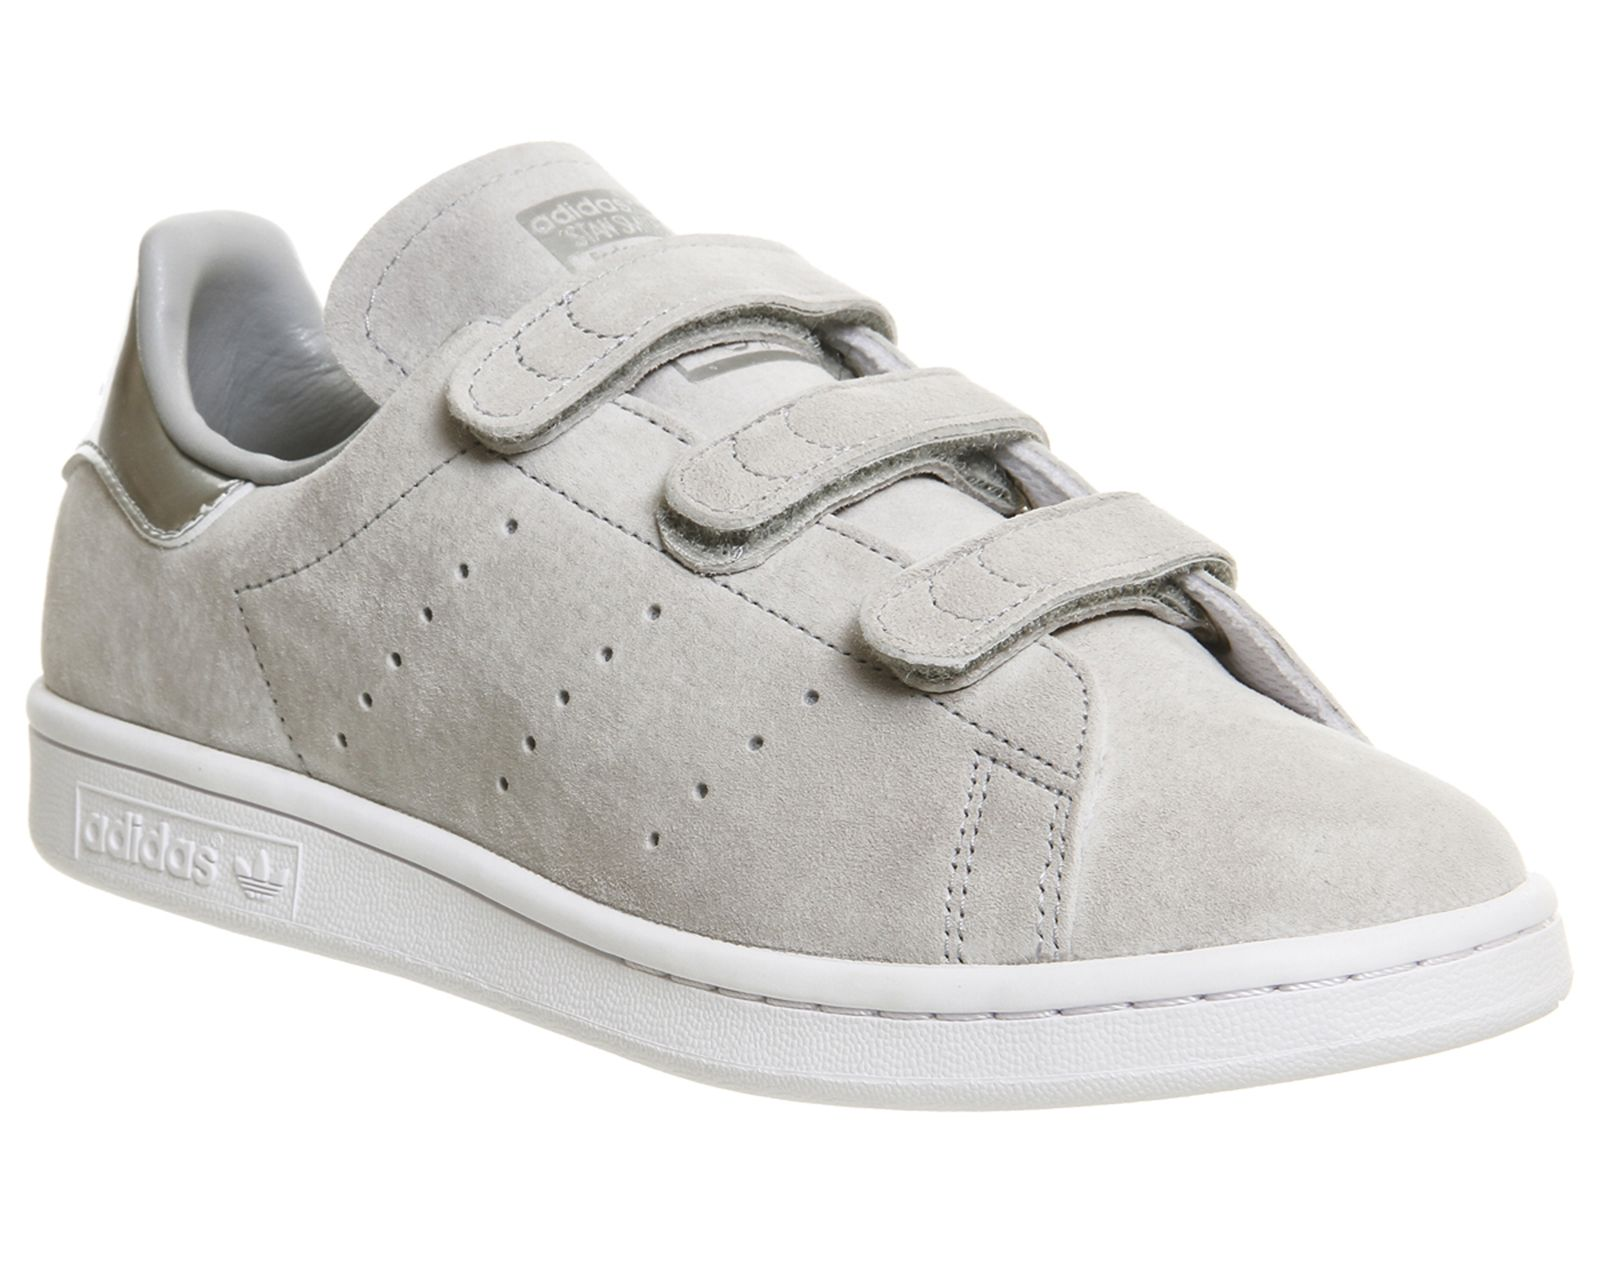 Adidas Stan Smith Cf Trainers Clear Onix Silver - Hers trainers